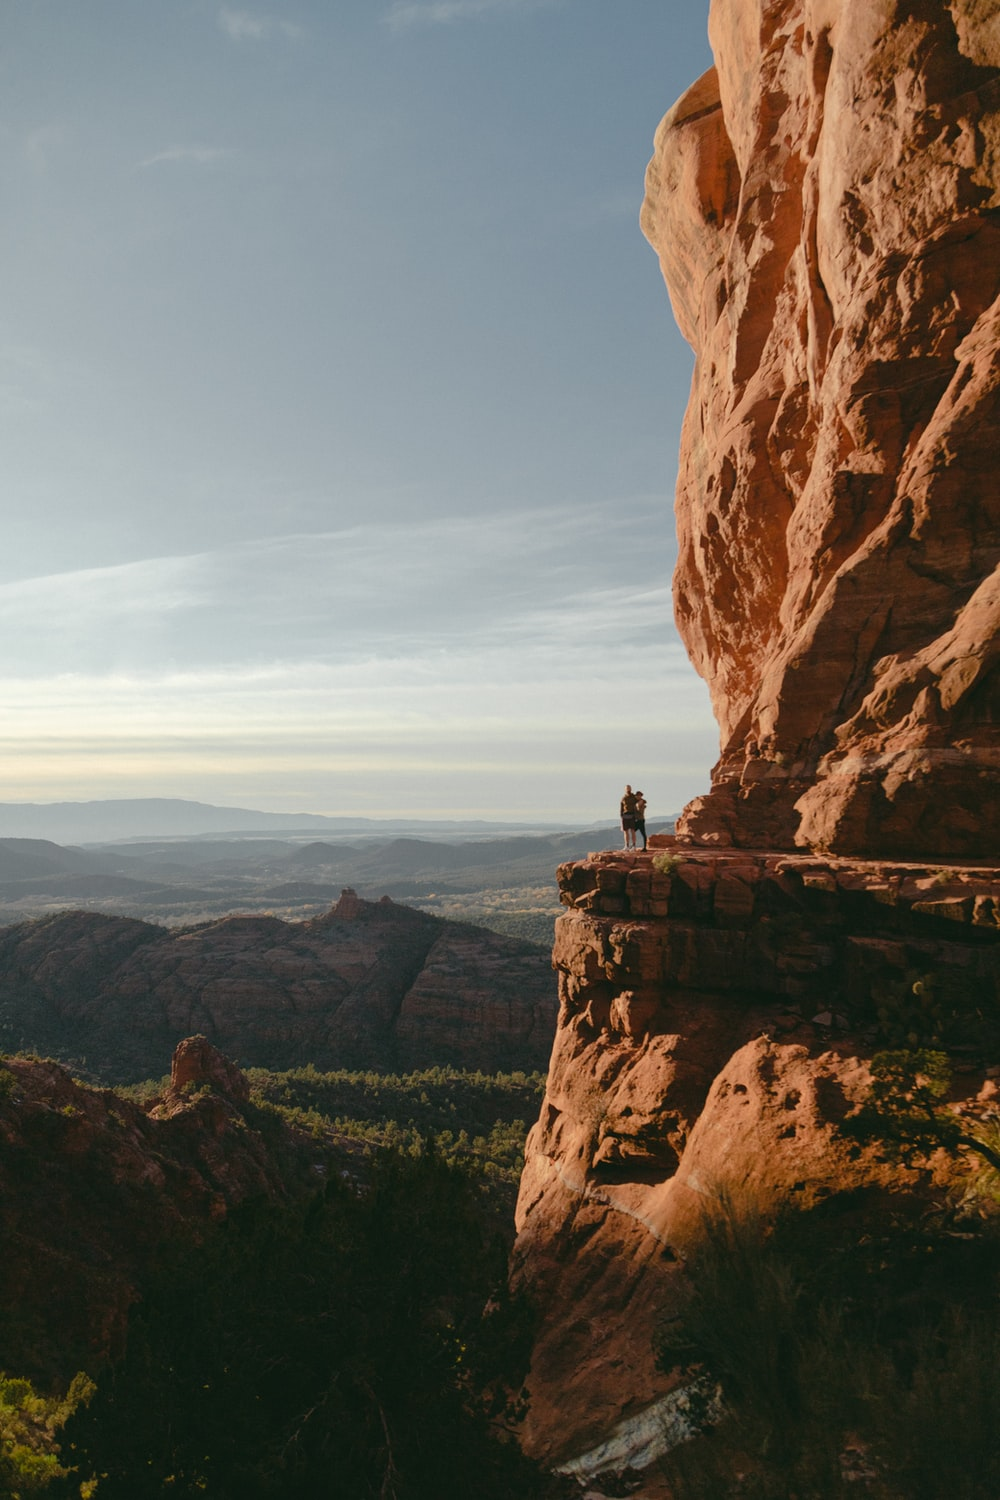 man and woman standing on mountain cliff during daytime